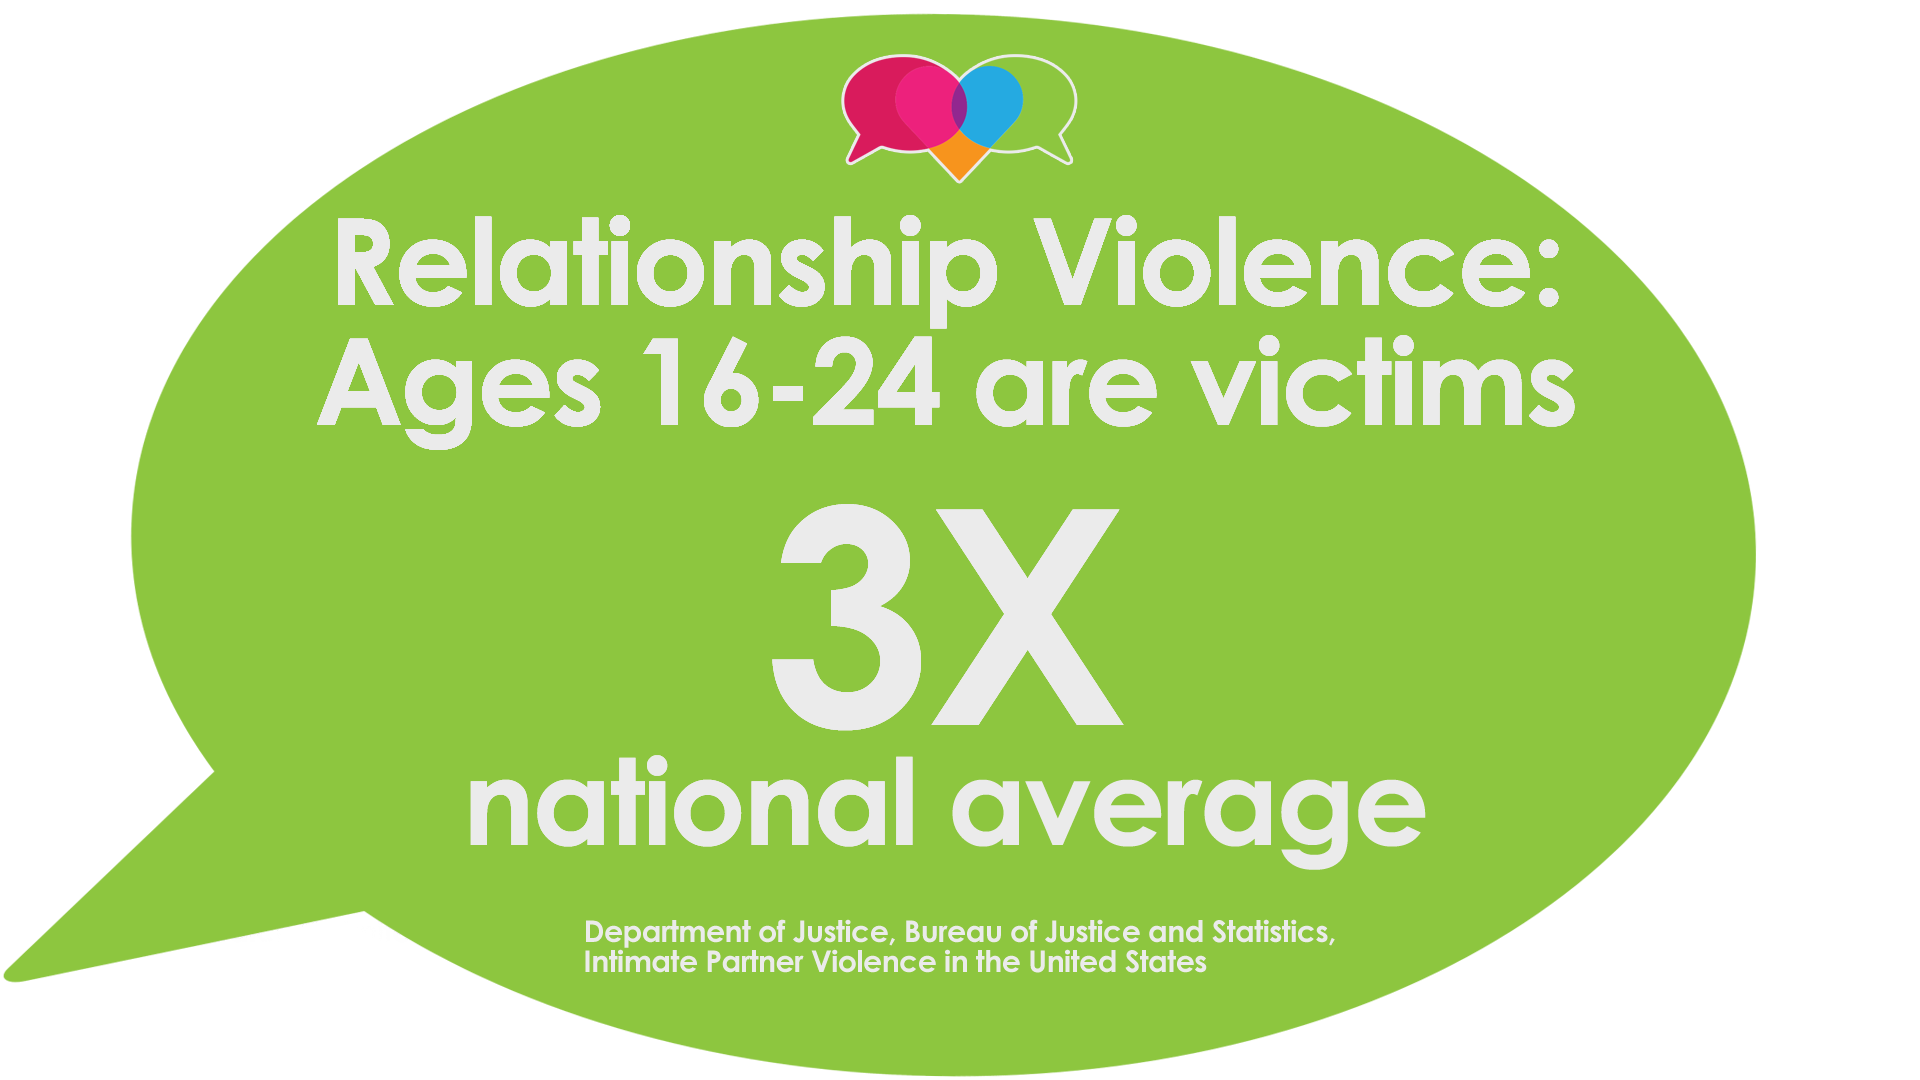 Relationship Violenece: Ages 16-24 are victims 3 times the national average